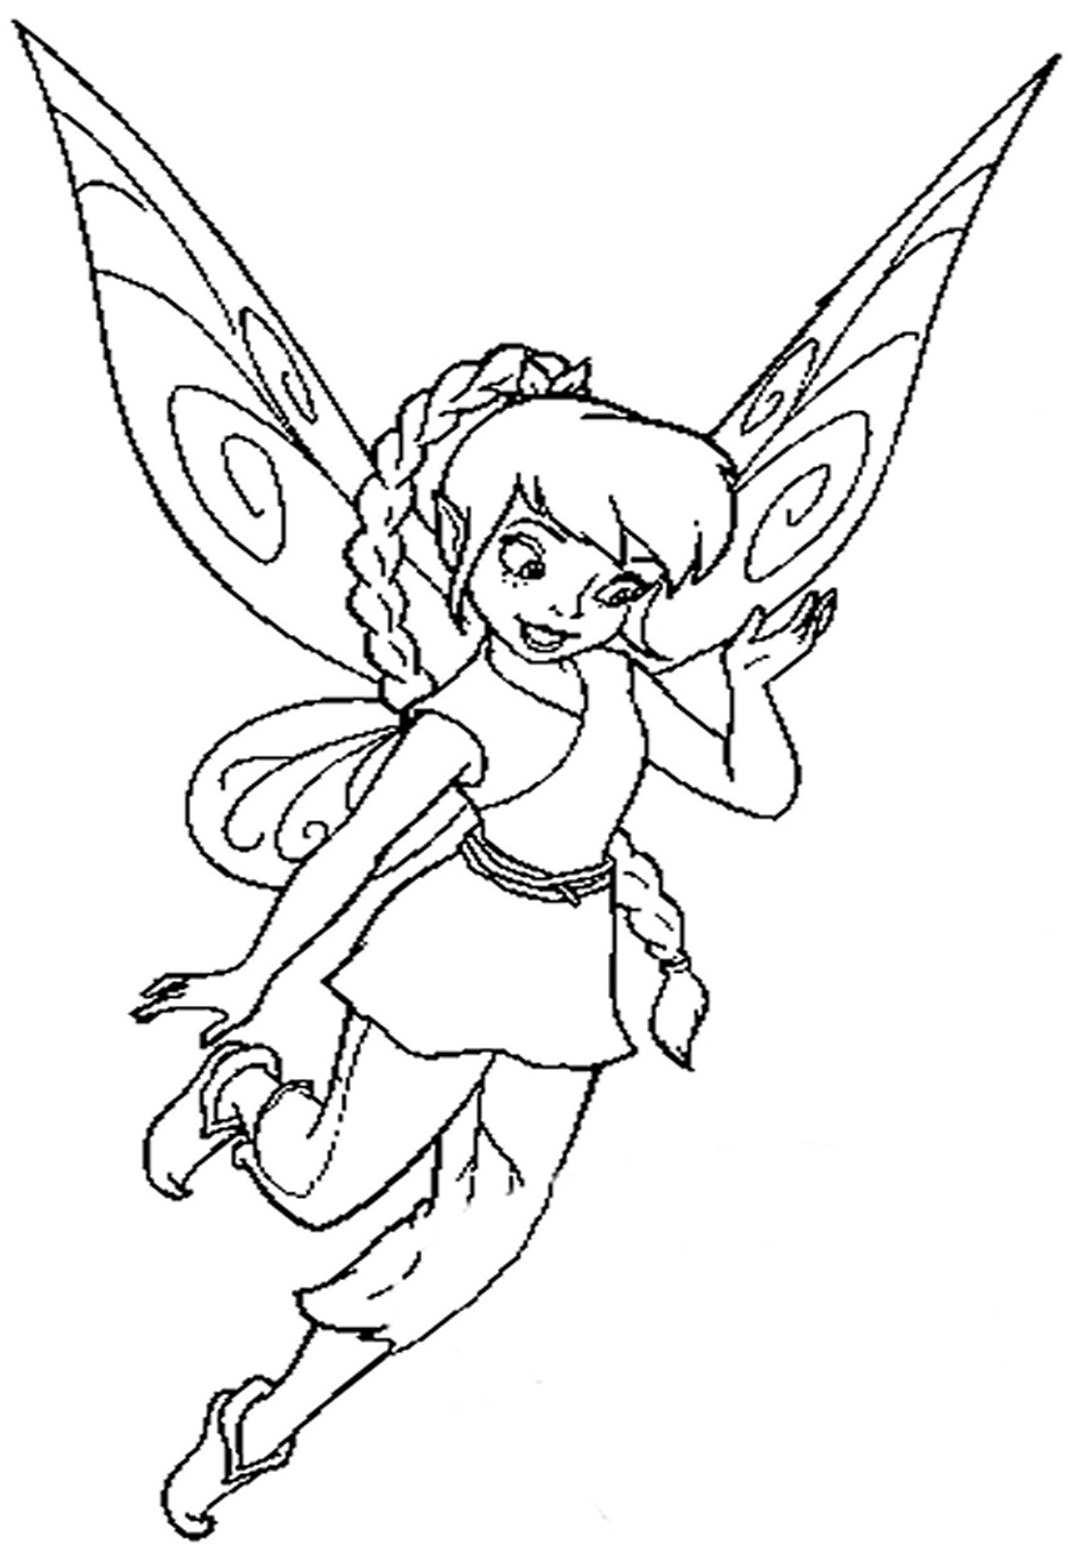 fawn fairy coloring pages fawn disney fairies coloring pages coloring fawn pages fairy